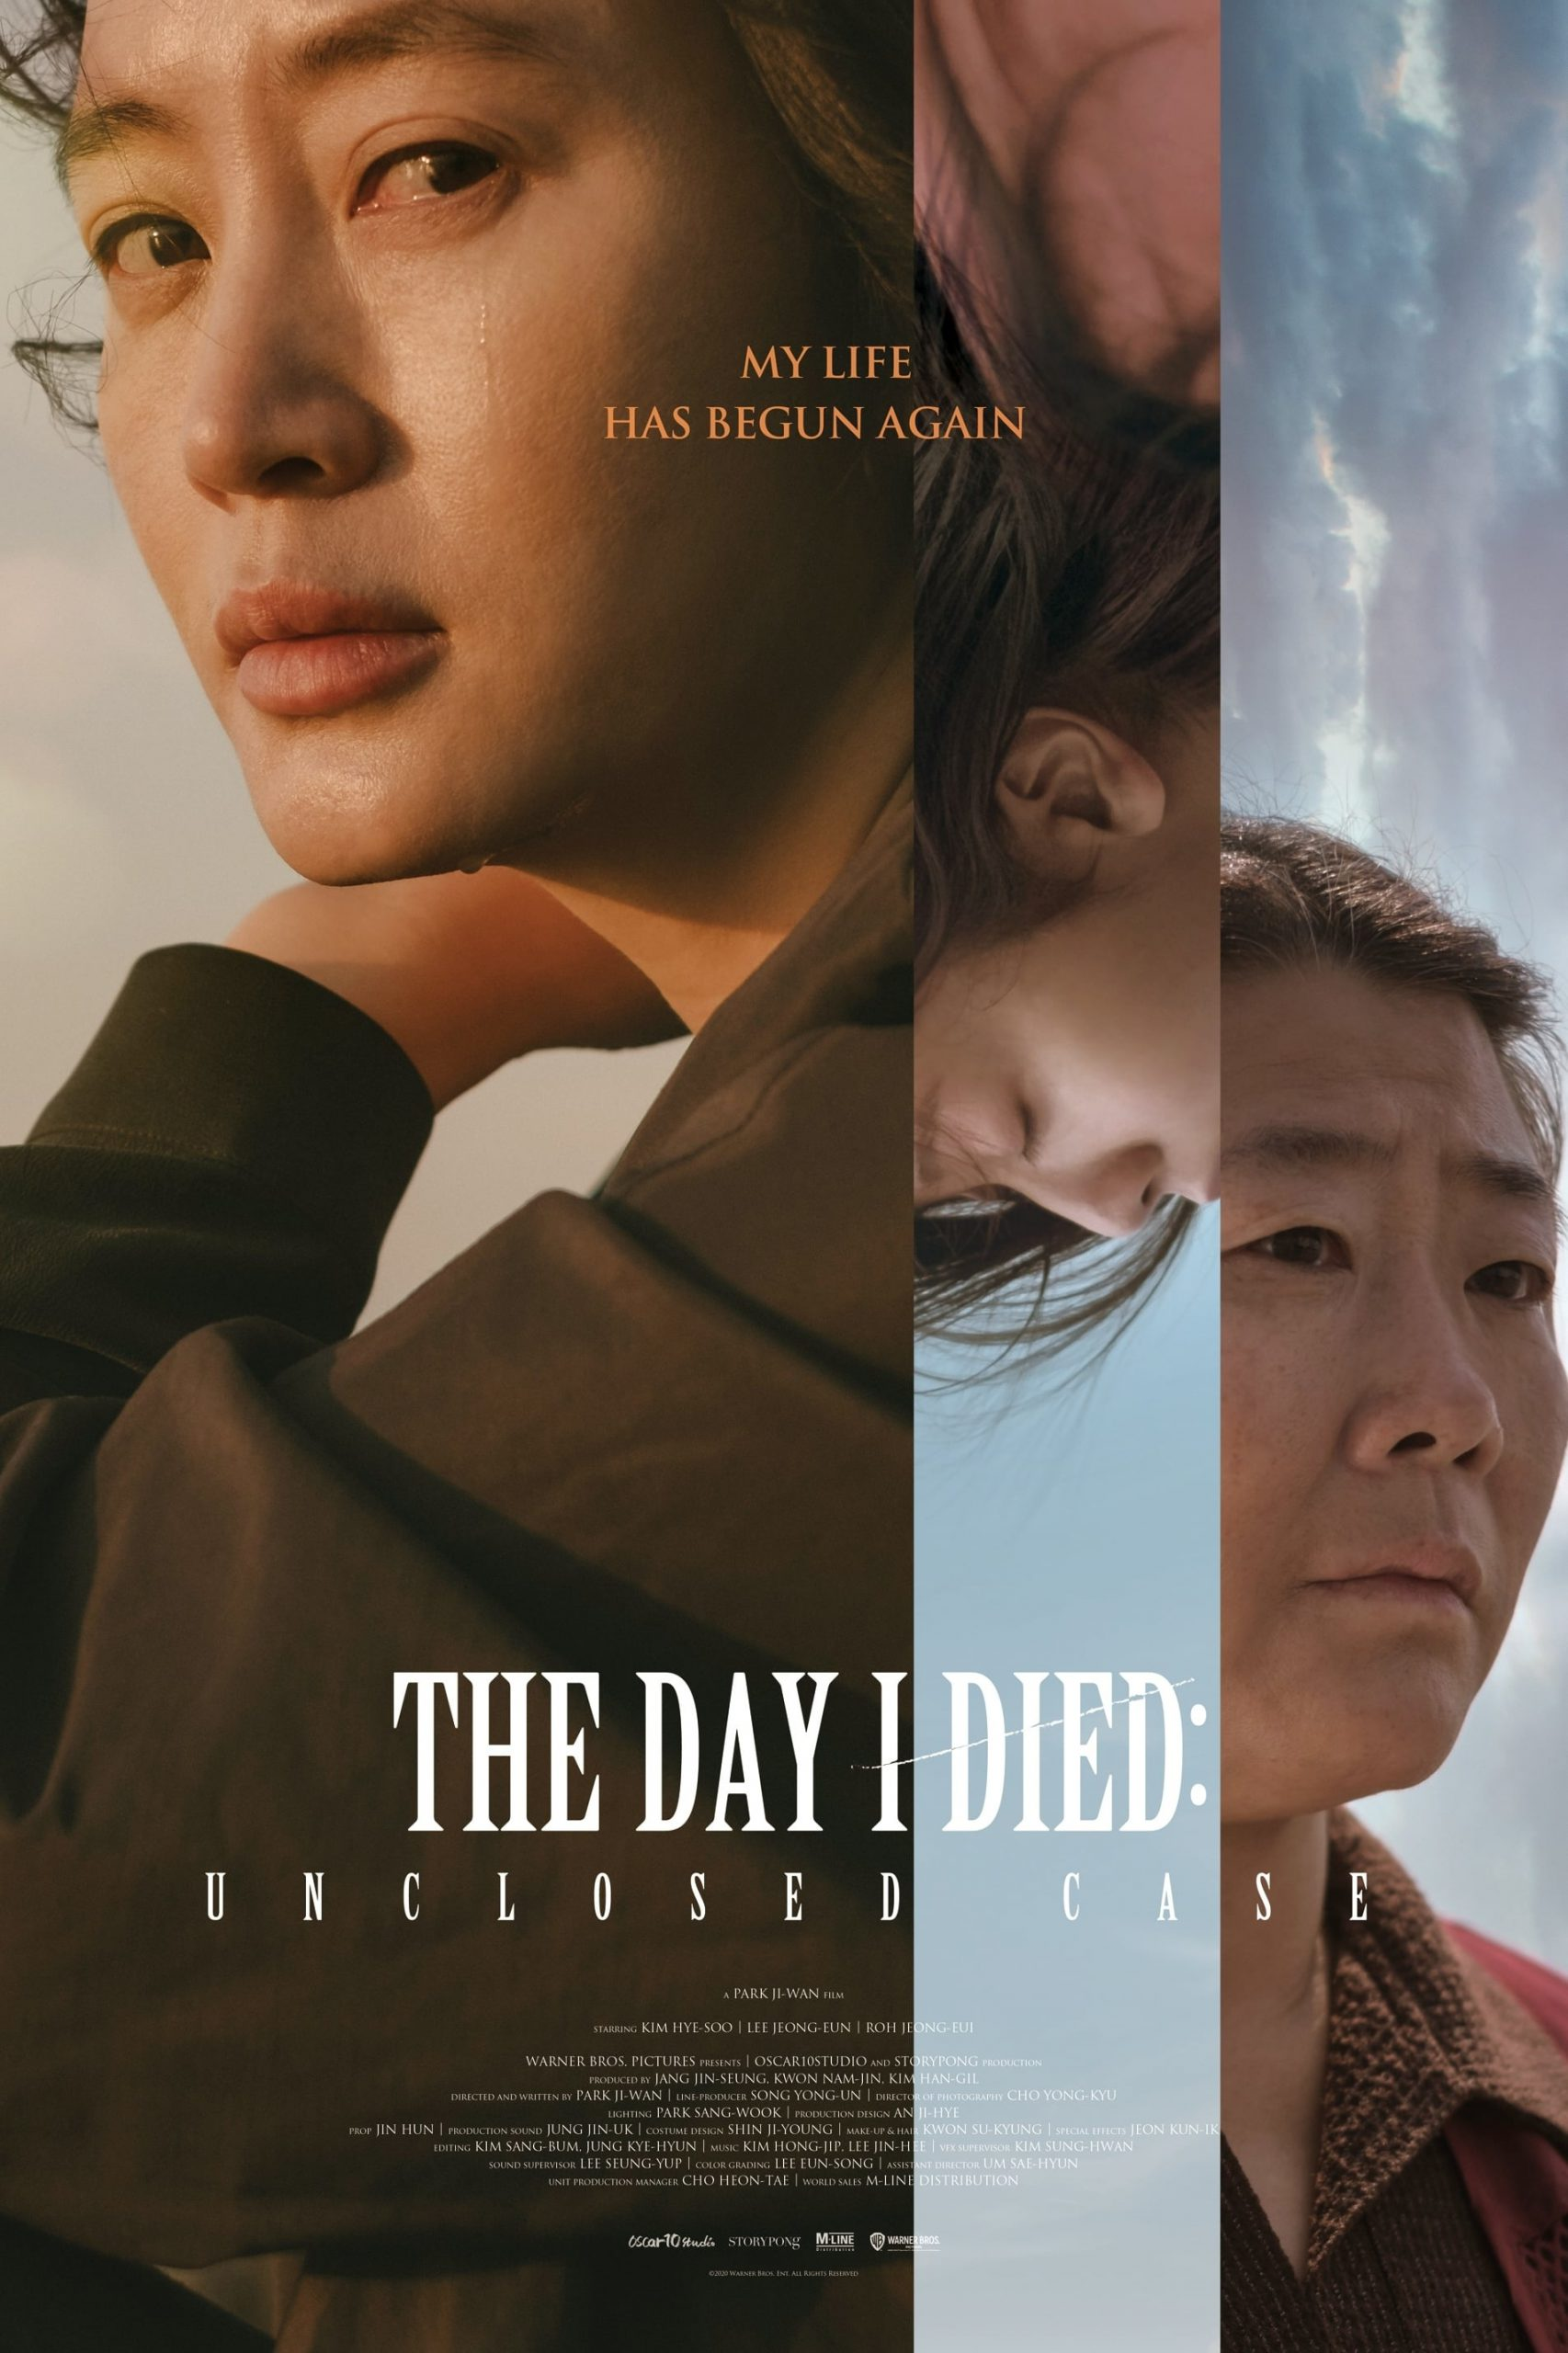 The Day I Died- Unclosed Case (2020)